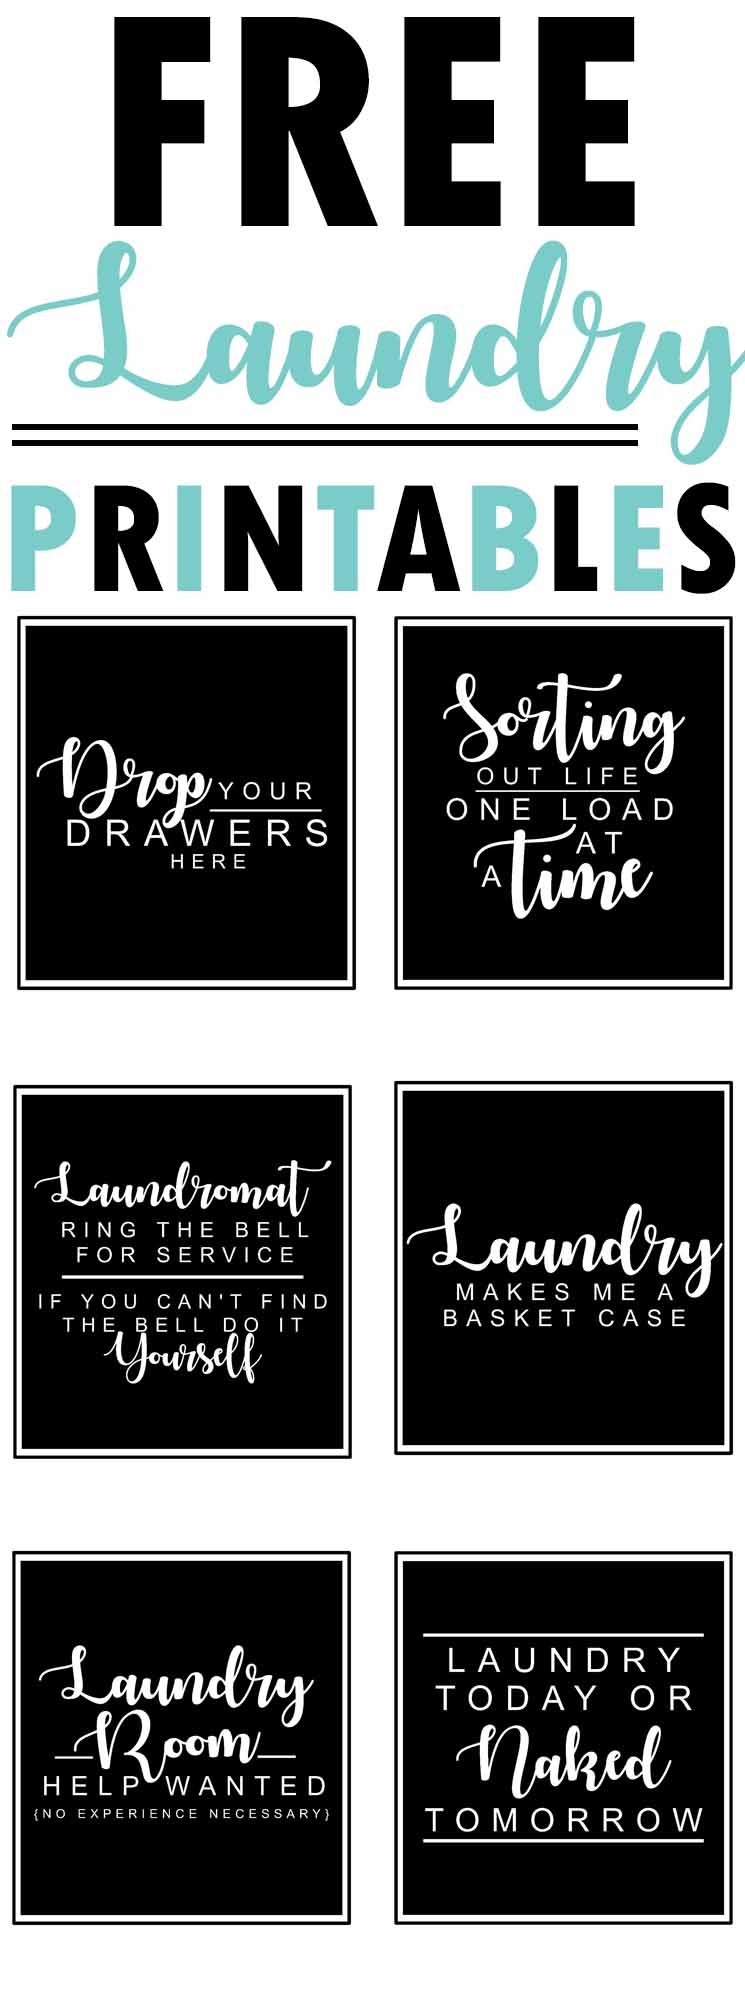 Free Laundry Room Printables - The Mountain View Cottage